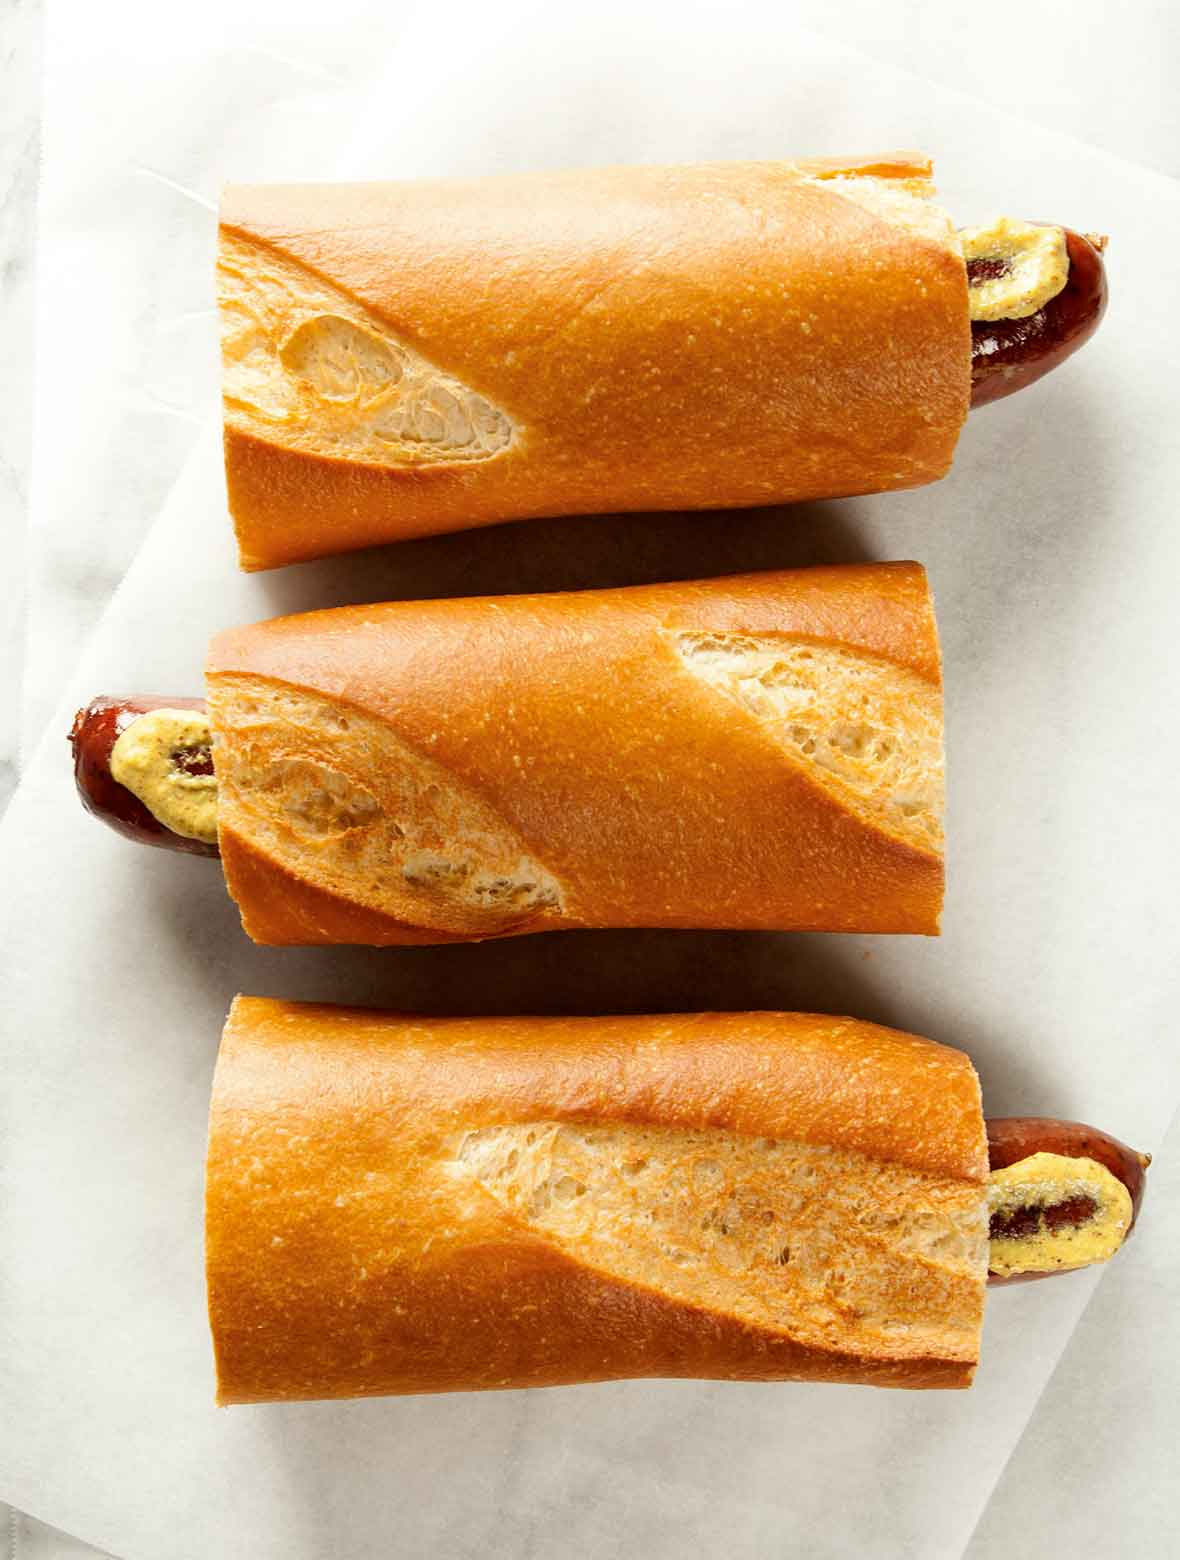 Hot Dog on a Baguette